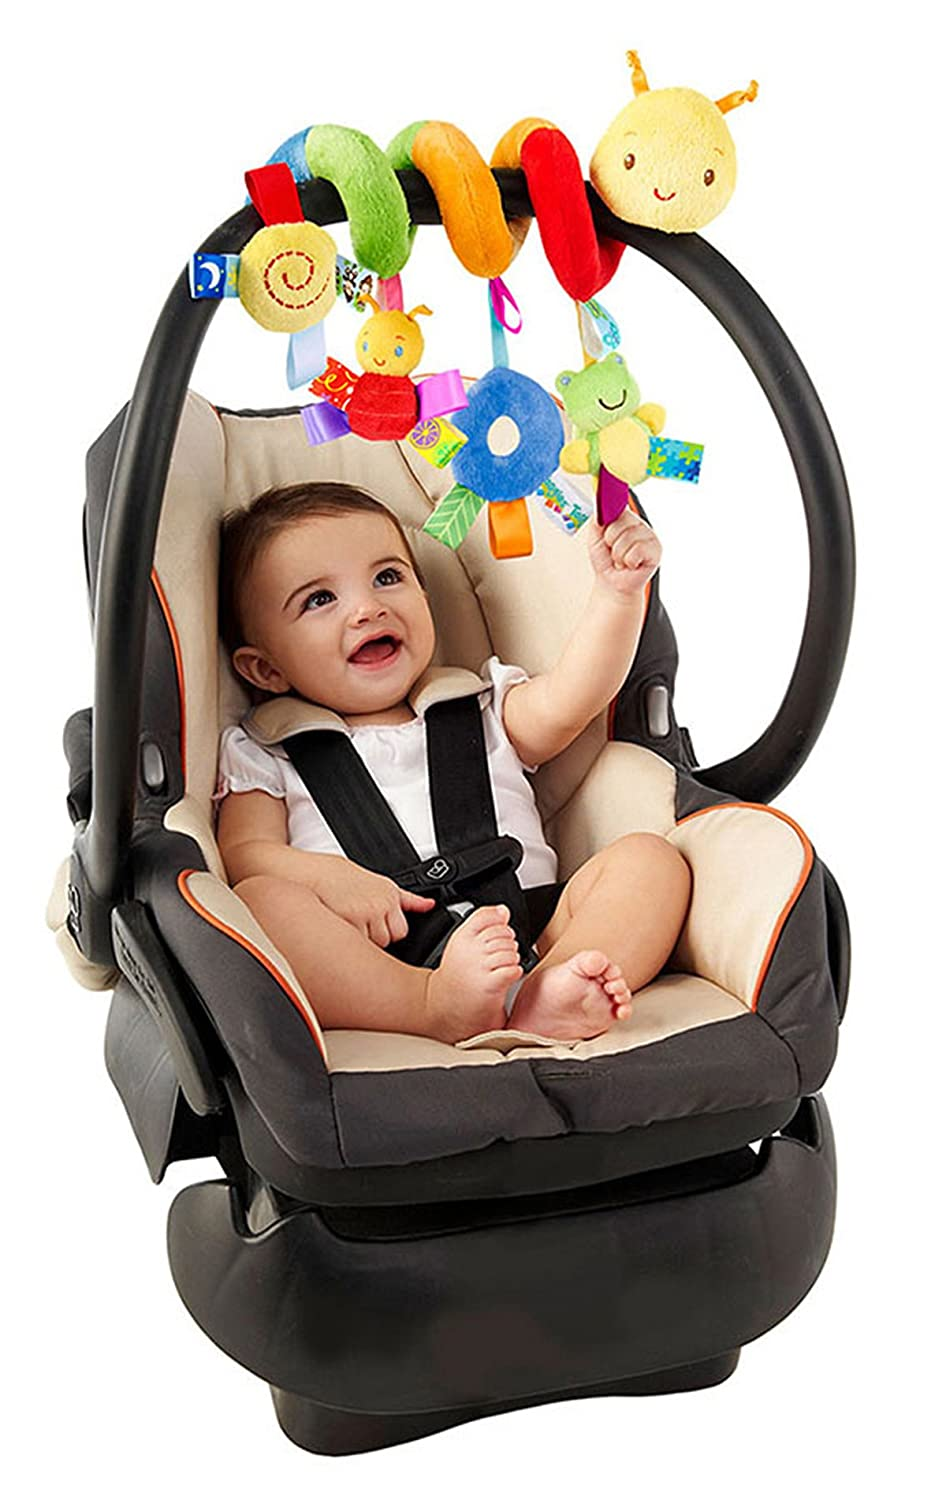 G Ganen Multi-Function Bedroom Decoration Infant Baby Activity Spiral Bed & Stroller Toy & Travel Activity Toy